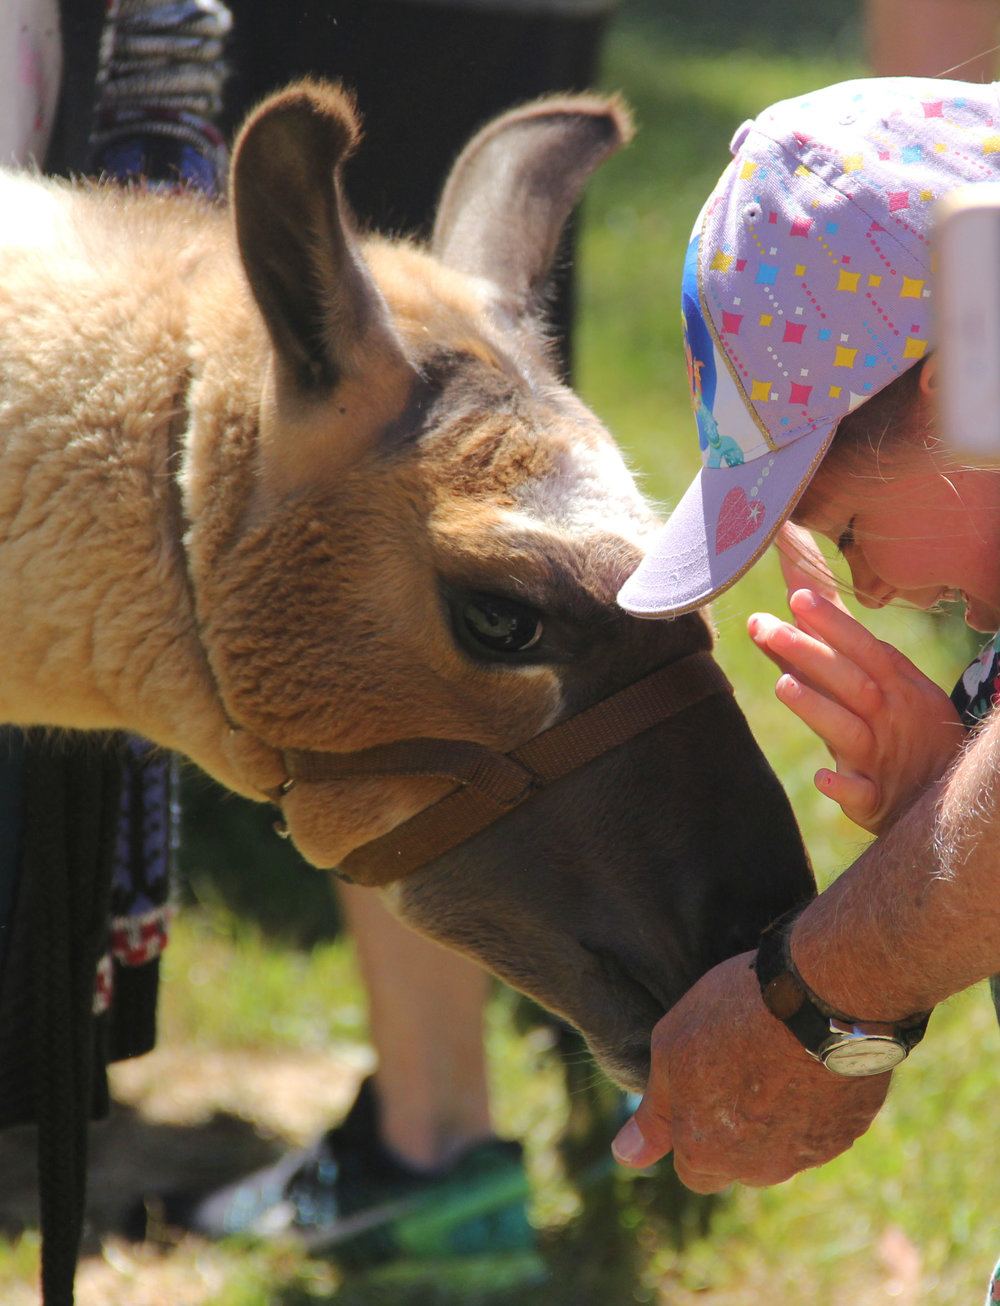 Llama Care - We need your help! Make a donation to support the work of Llamas of Circle Home. By donating you will help us to take care of our llamas to keep sharing their medicine with other people.SPONSOR A LLAMA